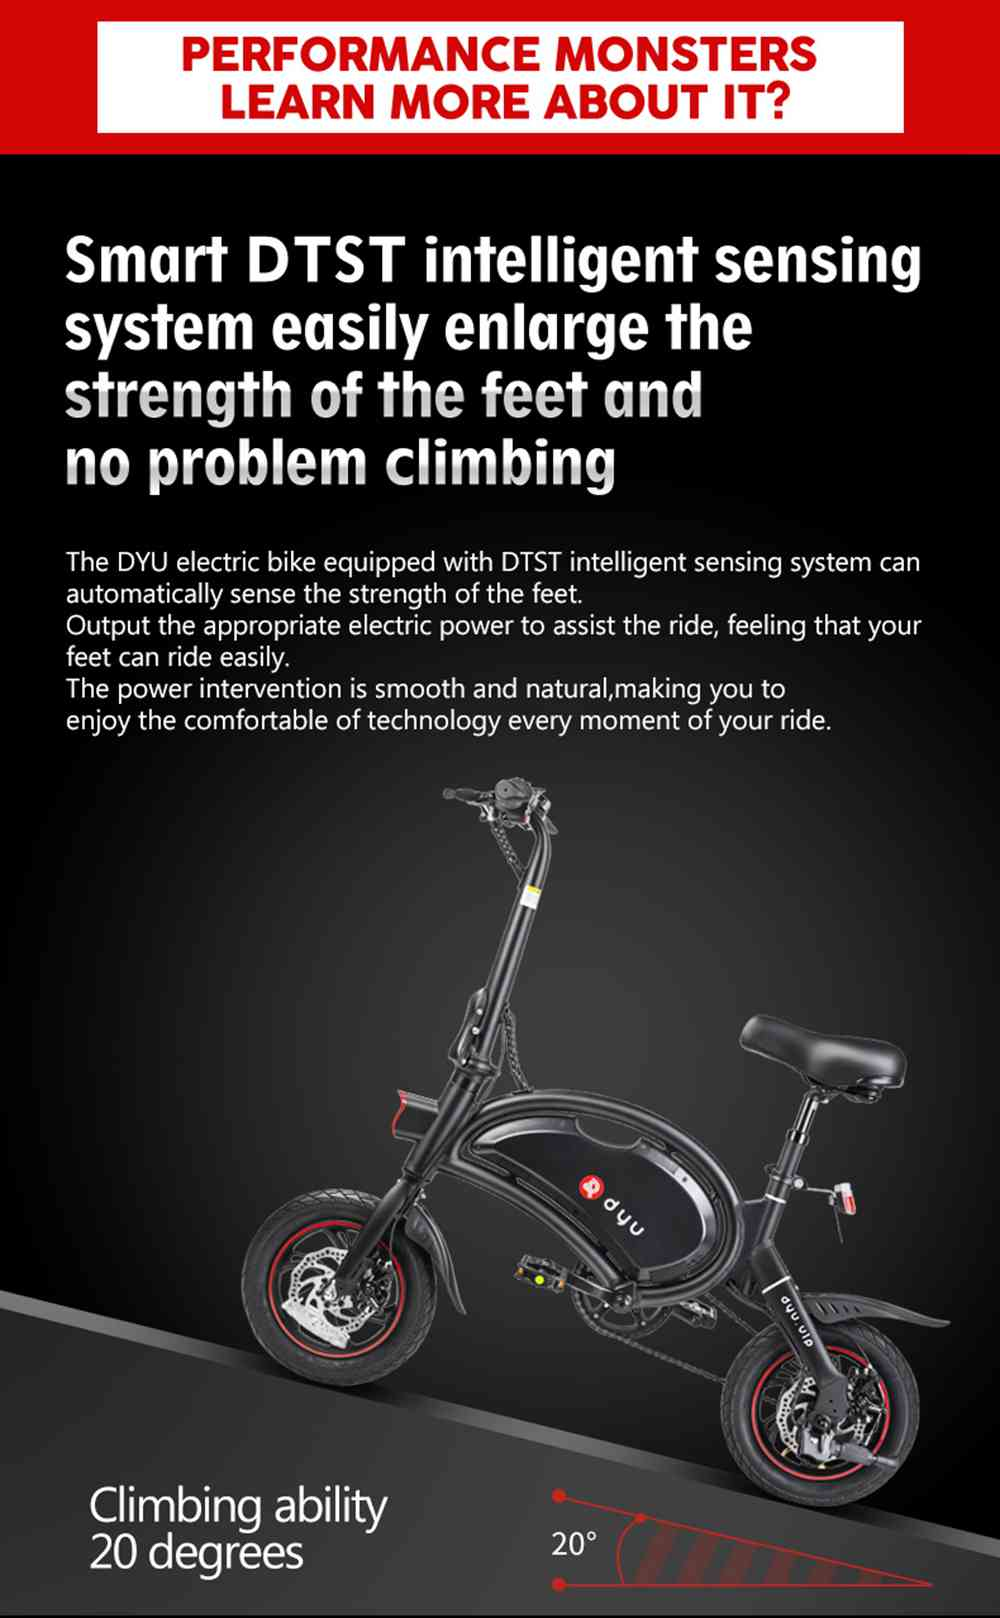 D3+ DYU Folding Moped Electric Bike 14 Inch Inflatable Rubber Tires 240W Motor Max Speed 25km/h Up To 45km Range Dual Disc Brakes Adjustable Height - Black